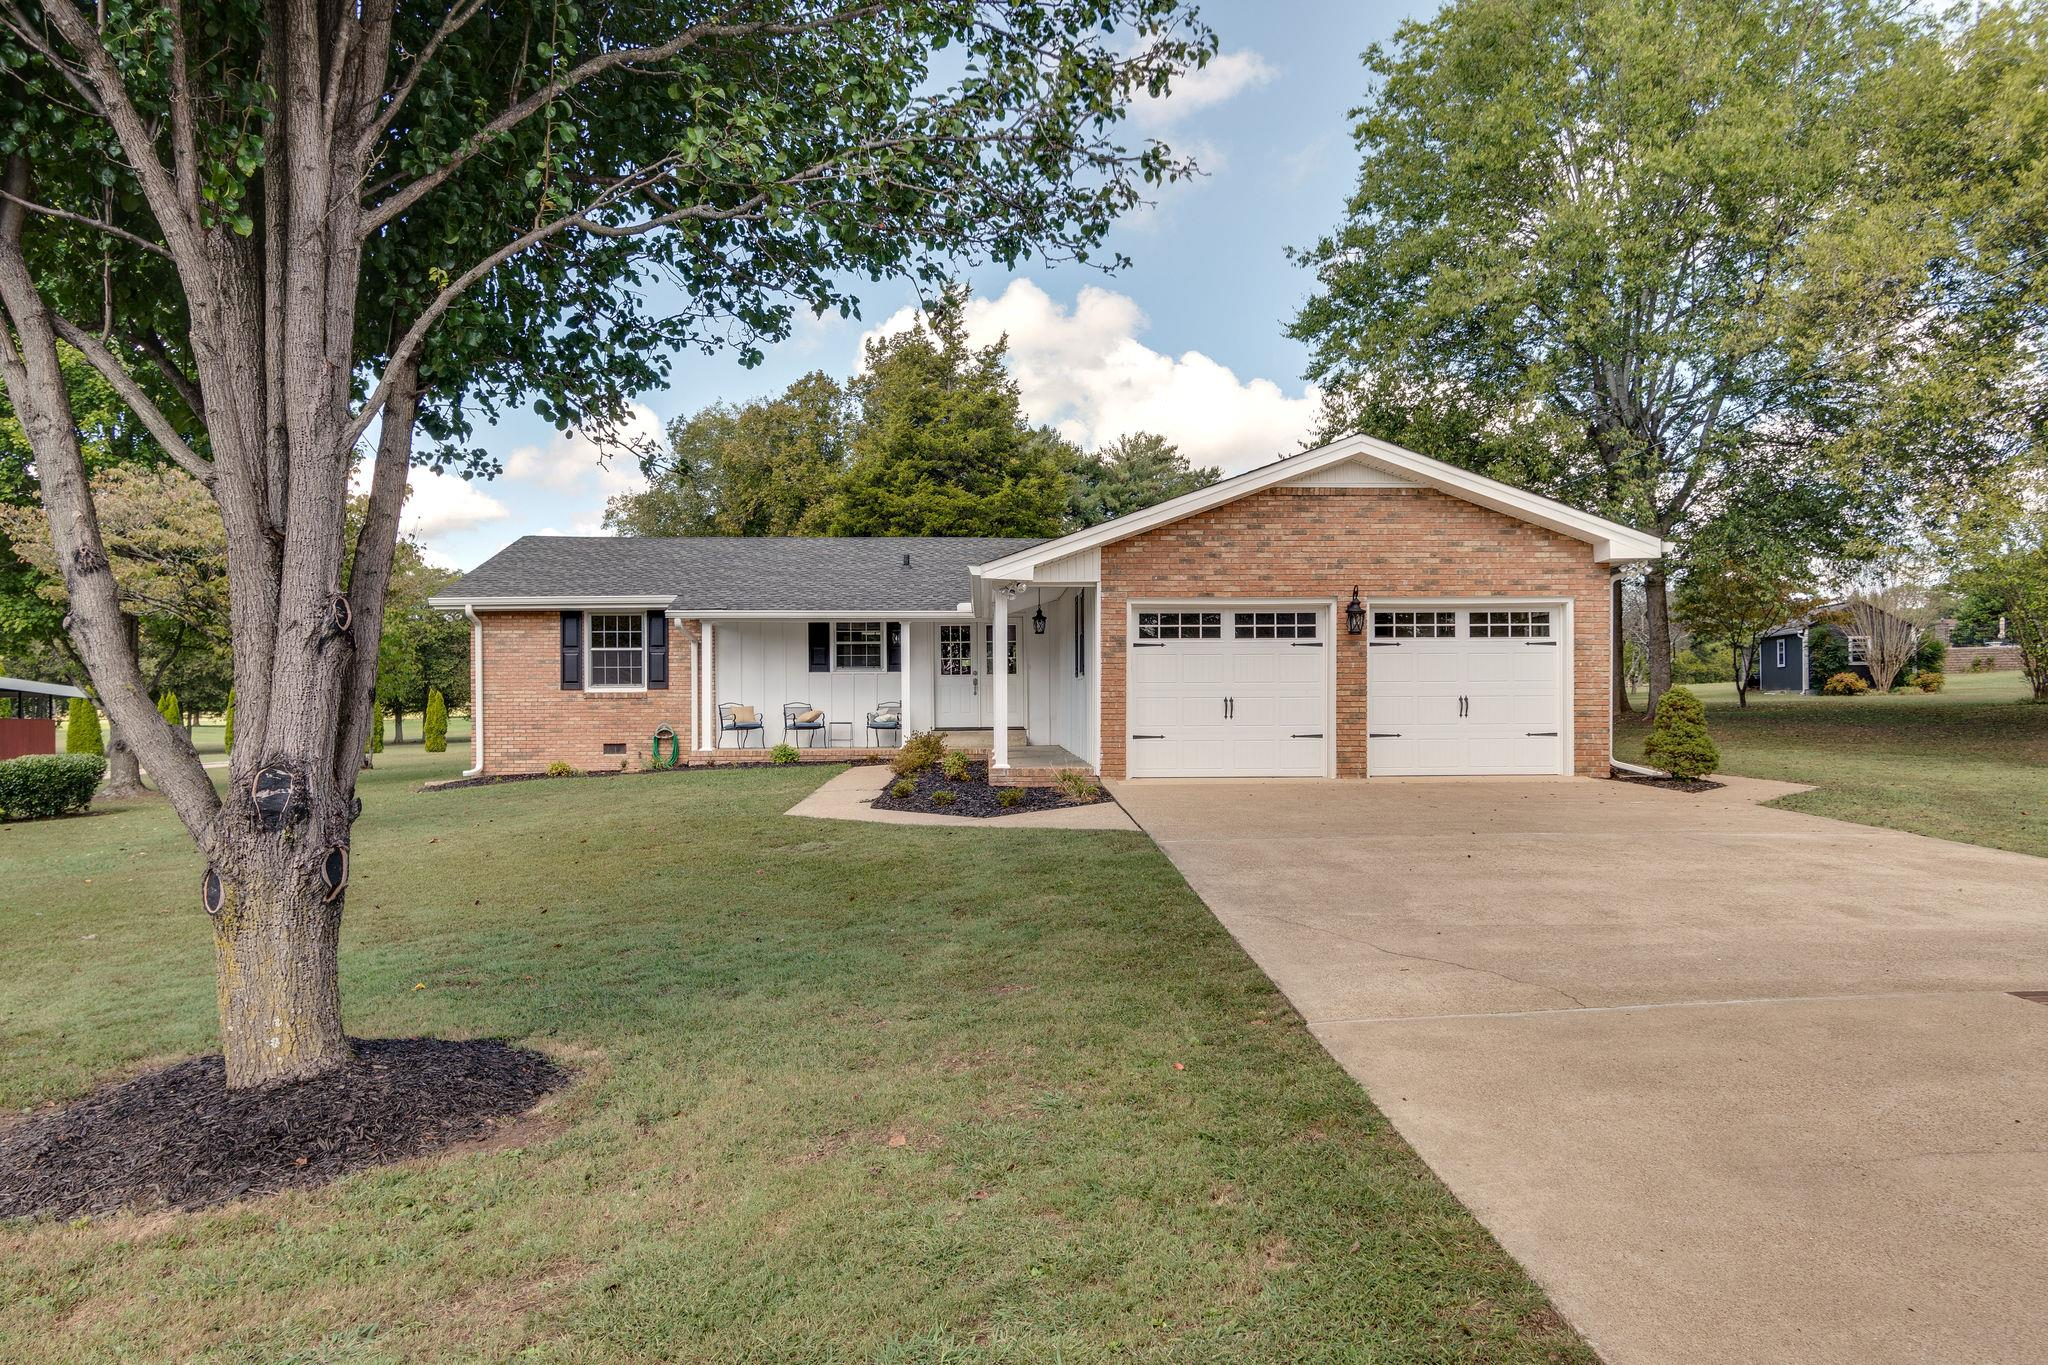 404 Manor Cir, Lewisburg, TN 37091 - Lewisburg, TN real estate listing